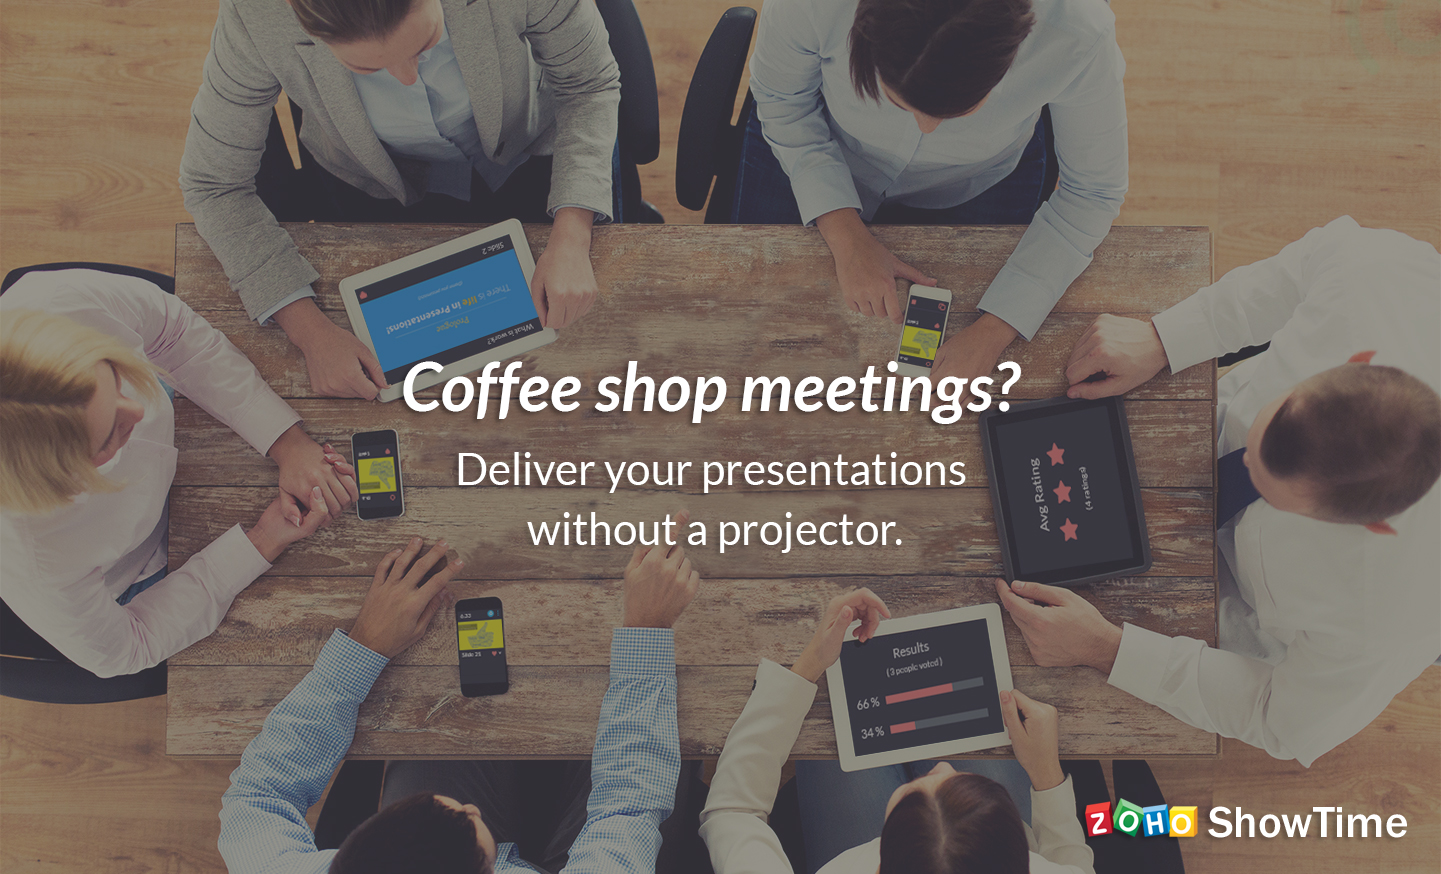 Zoho ShowTime – Enabling New Age Business Meetings